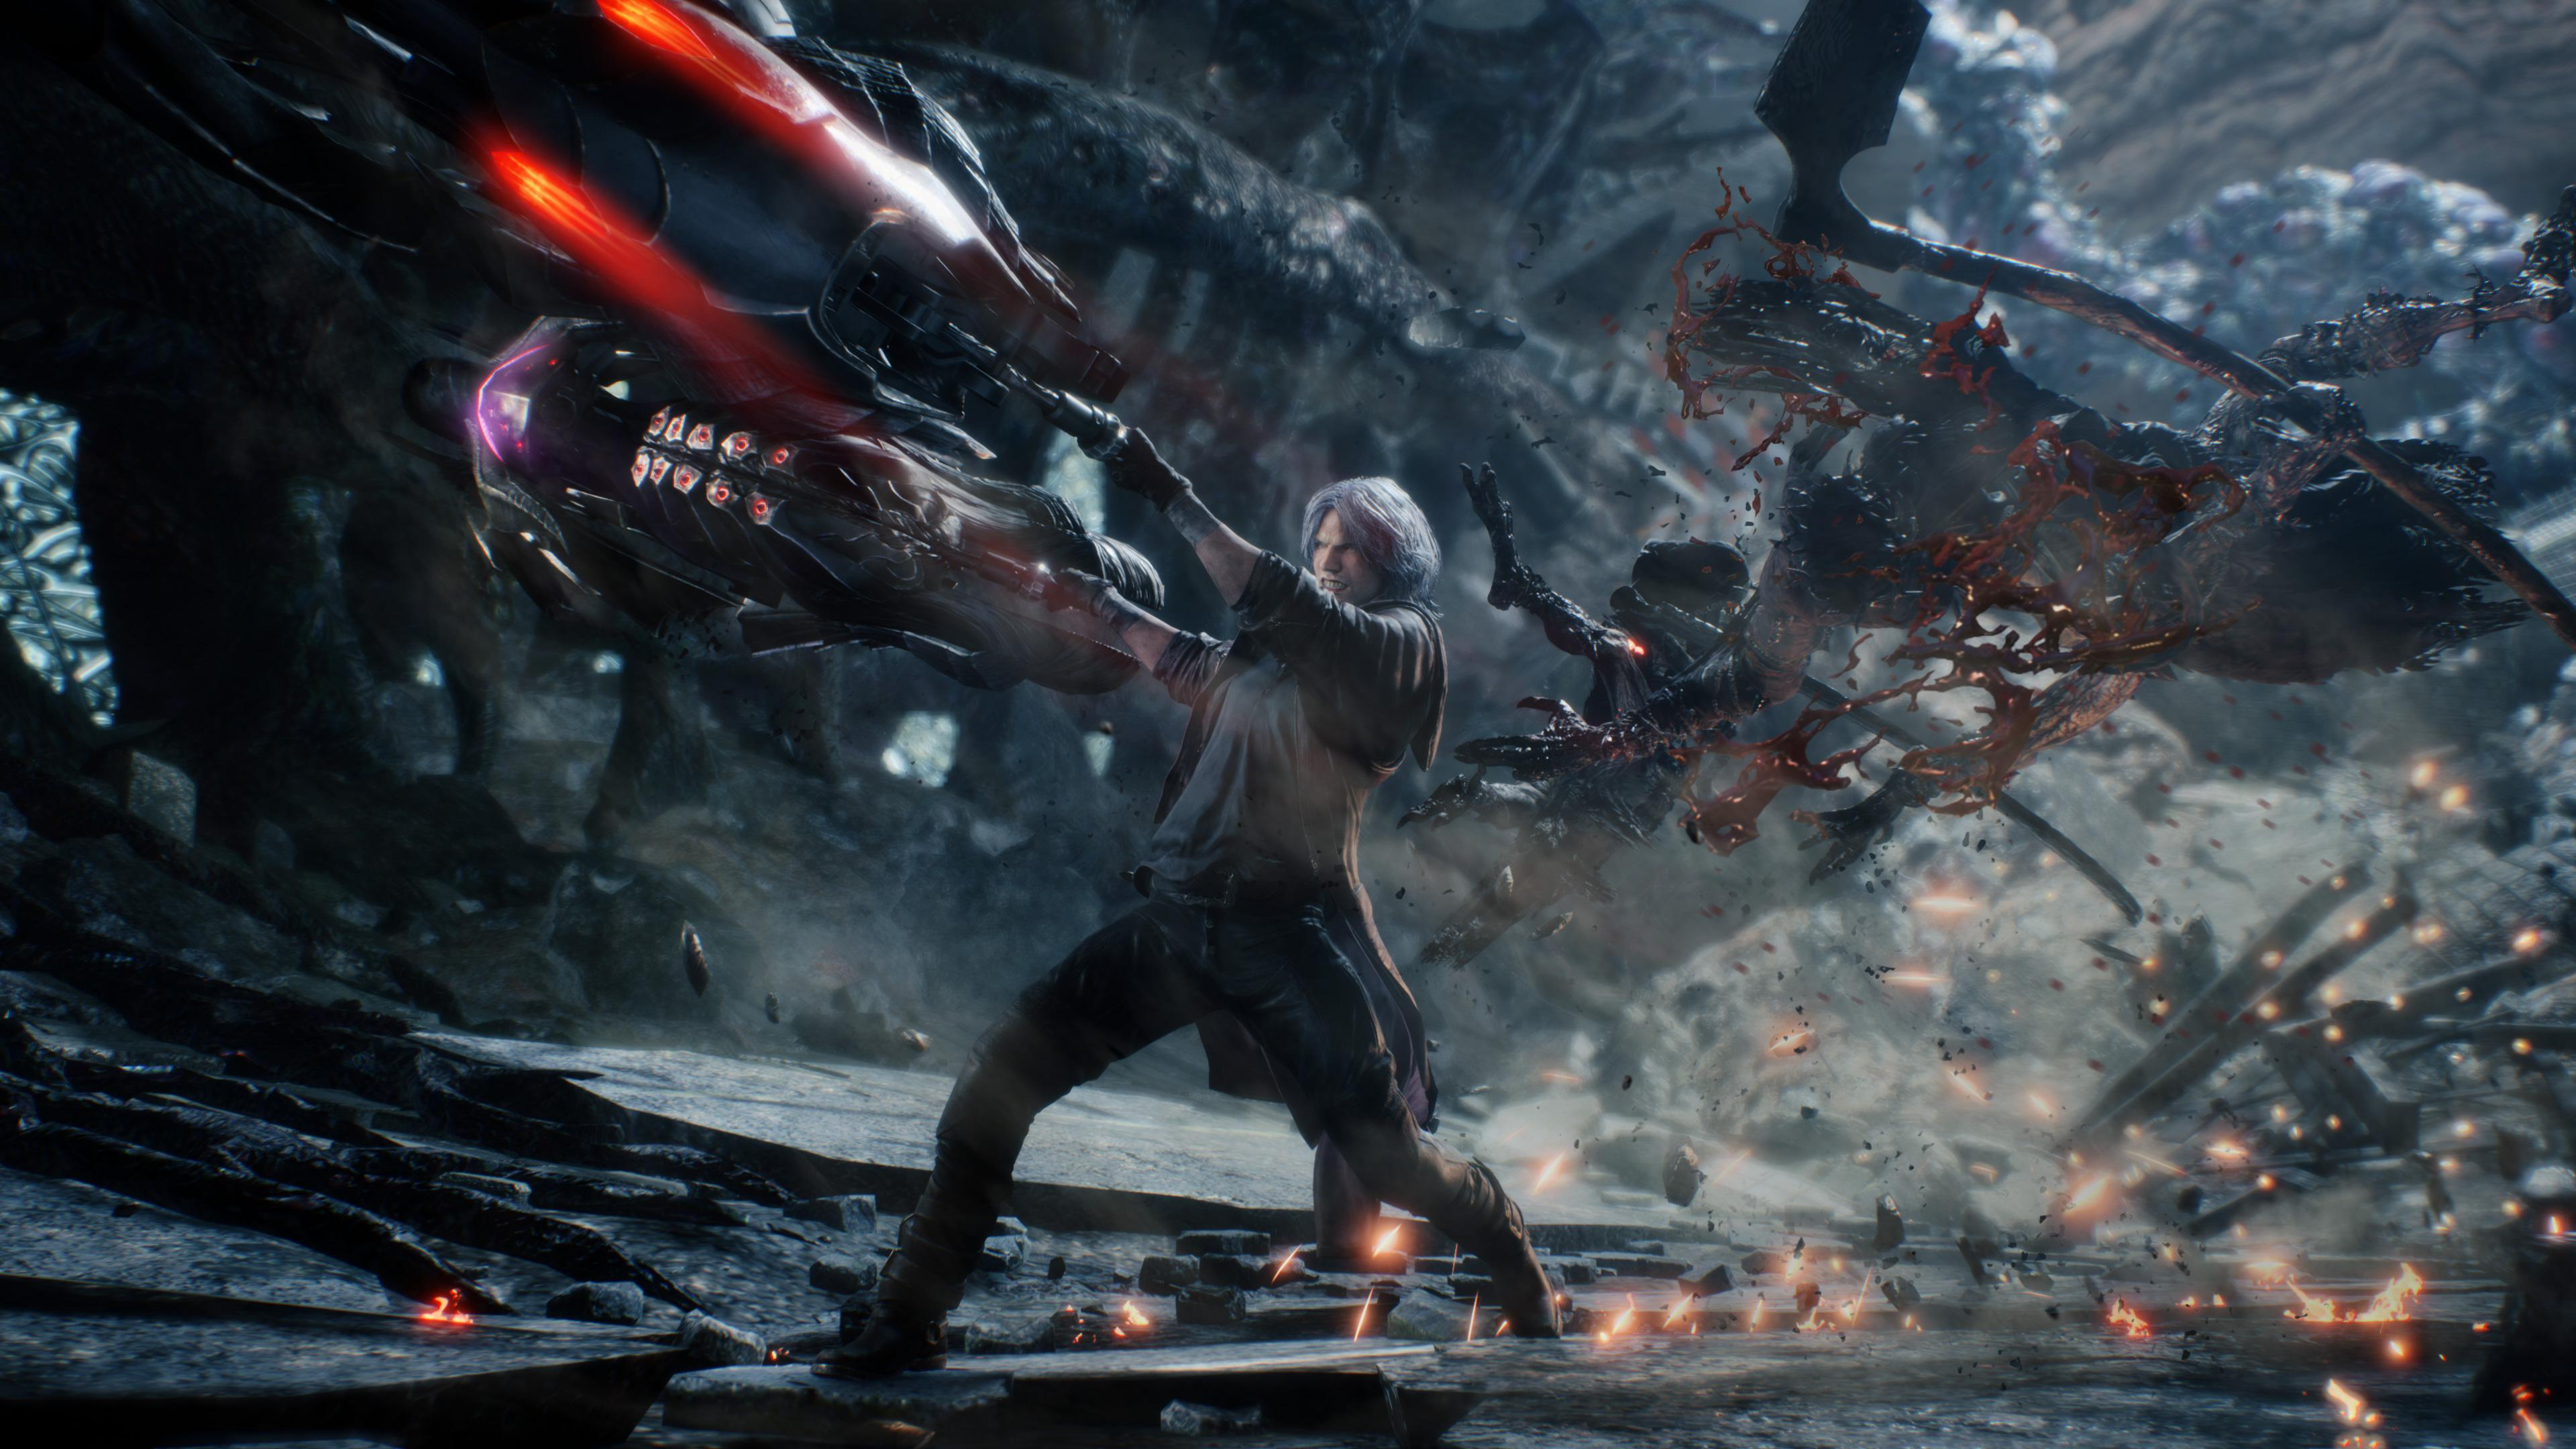 Nero Devil May Cry K Hd Games K Wallpapers Images